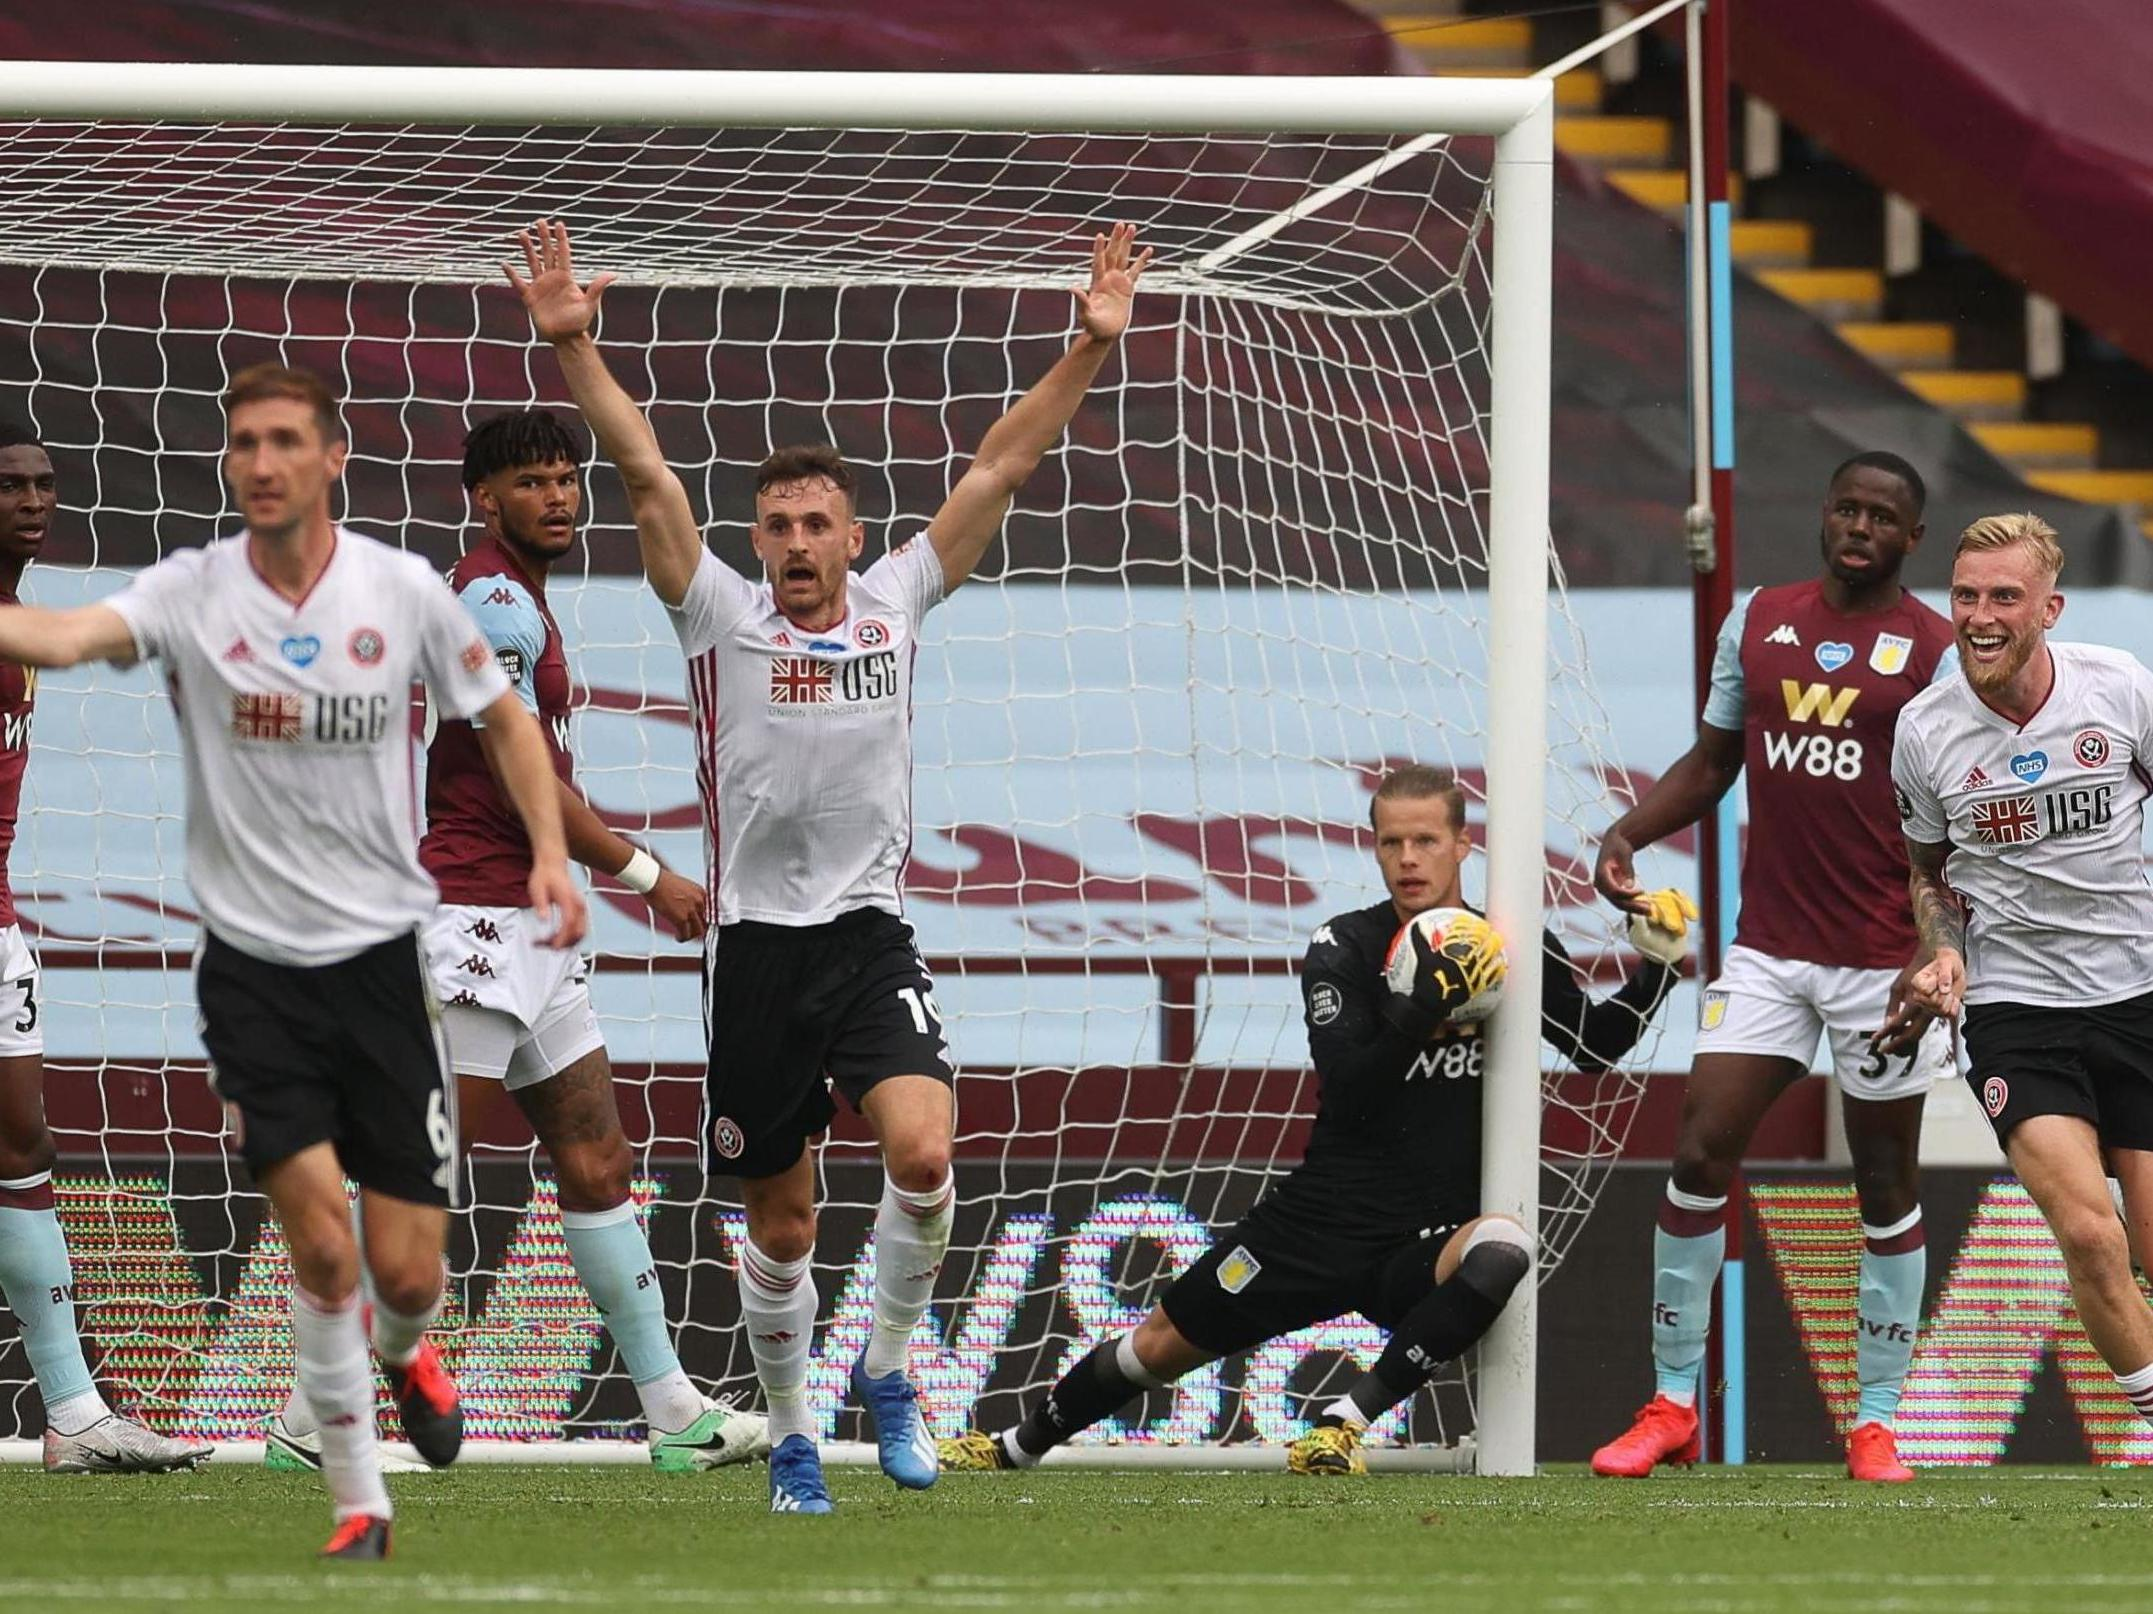 sheffield united vs aston villa - photo #19